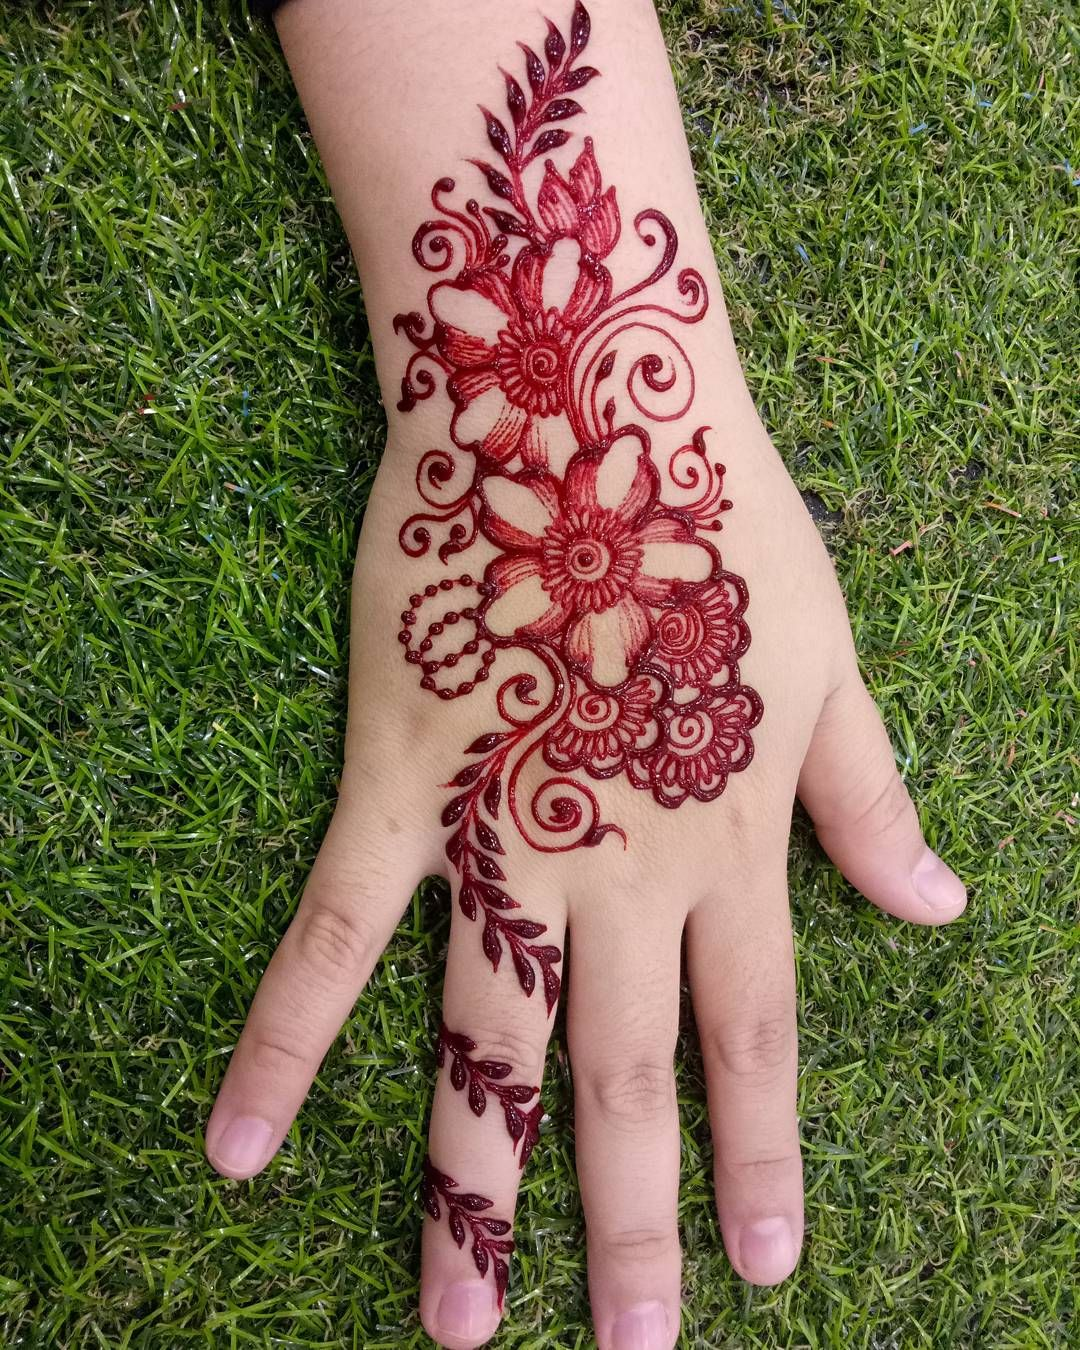 Pin By Adihcar Ha On Henna Henna Henna Designs Mehndi